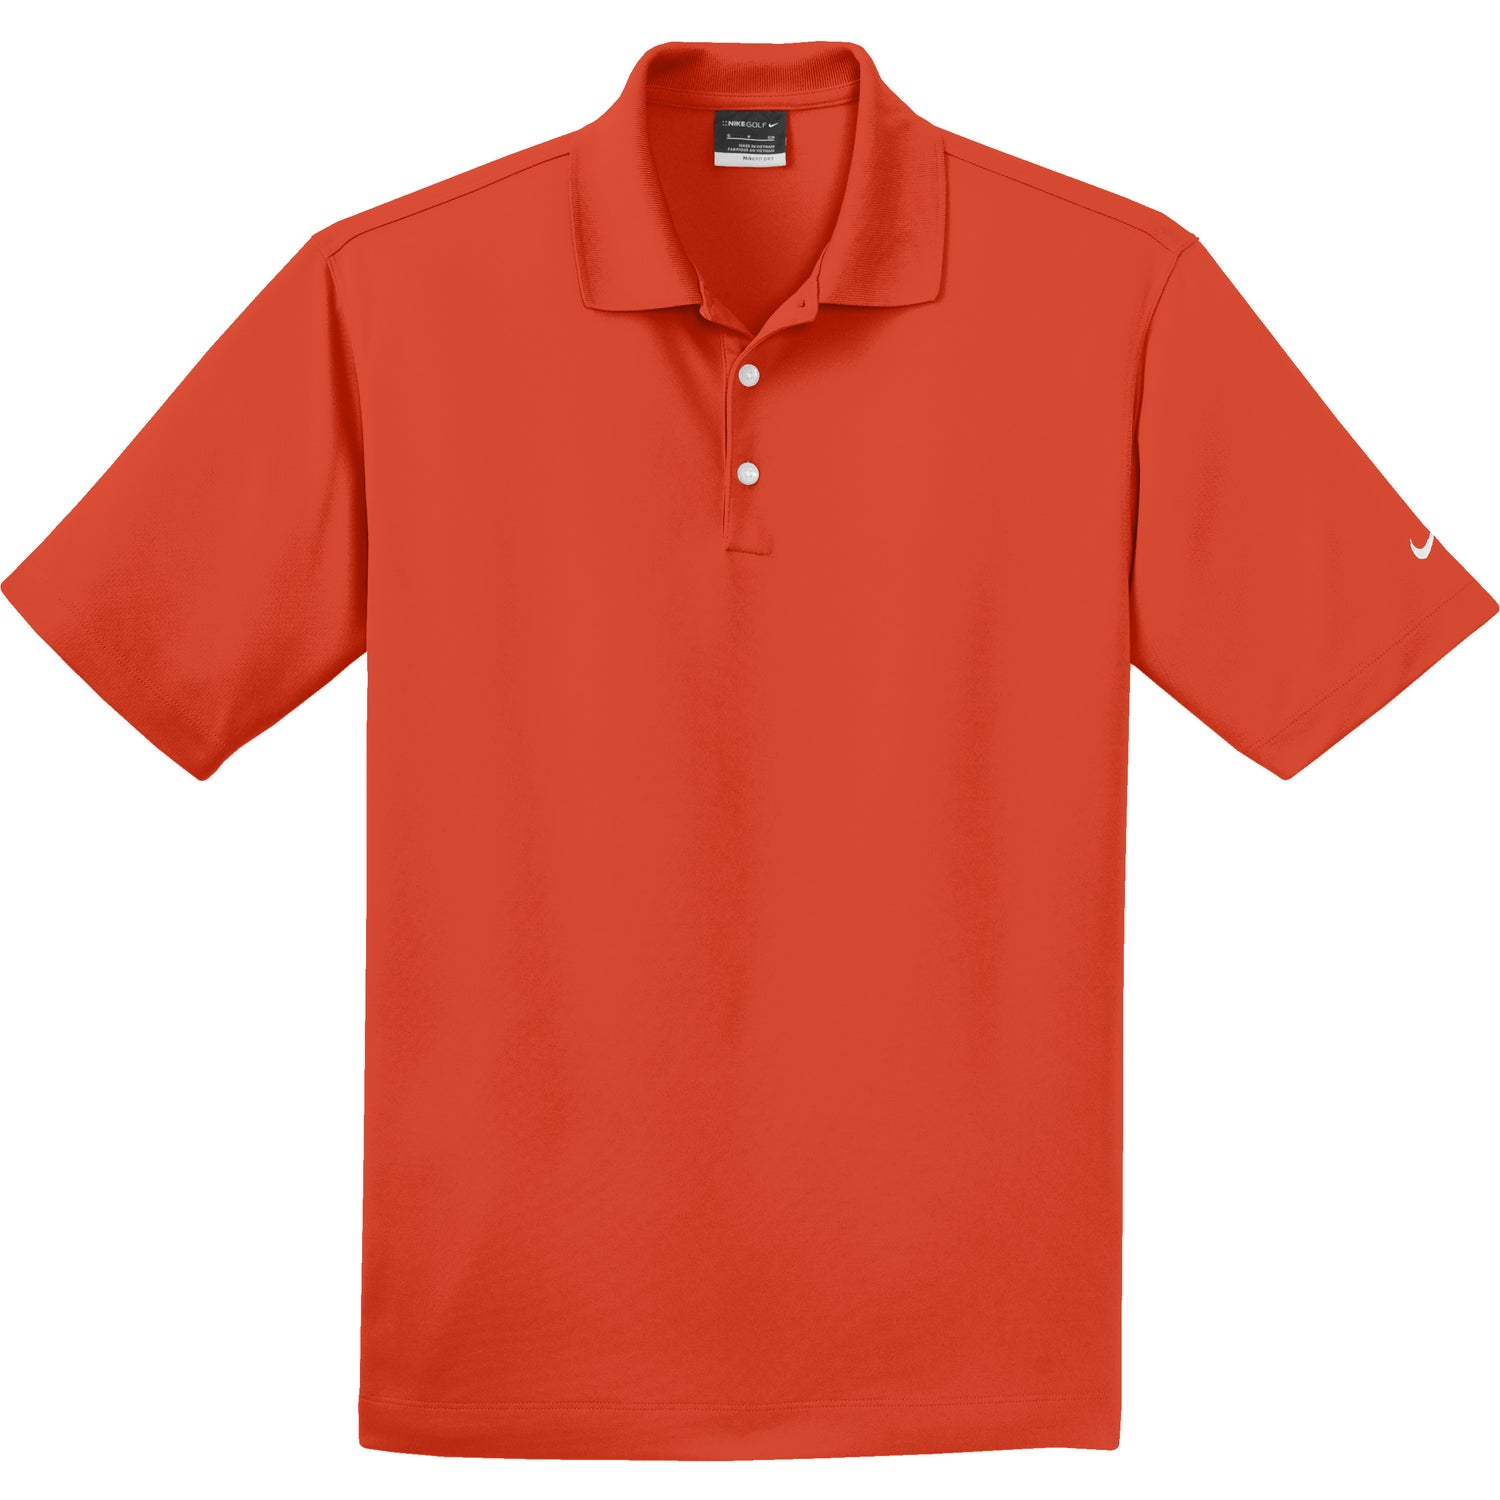 Nike golf dri fit micro pique polo shirt embroidered for Corporate logo golf shirts